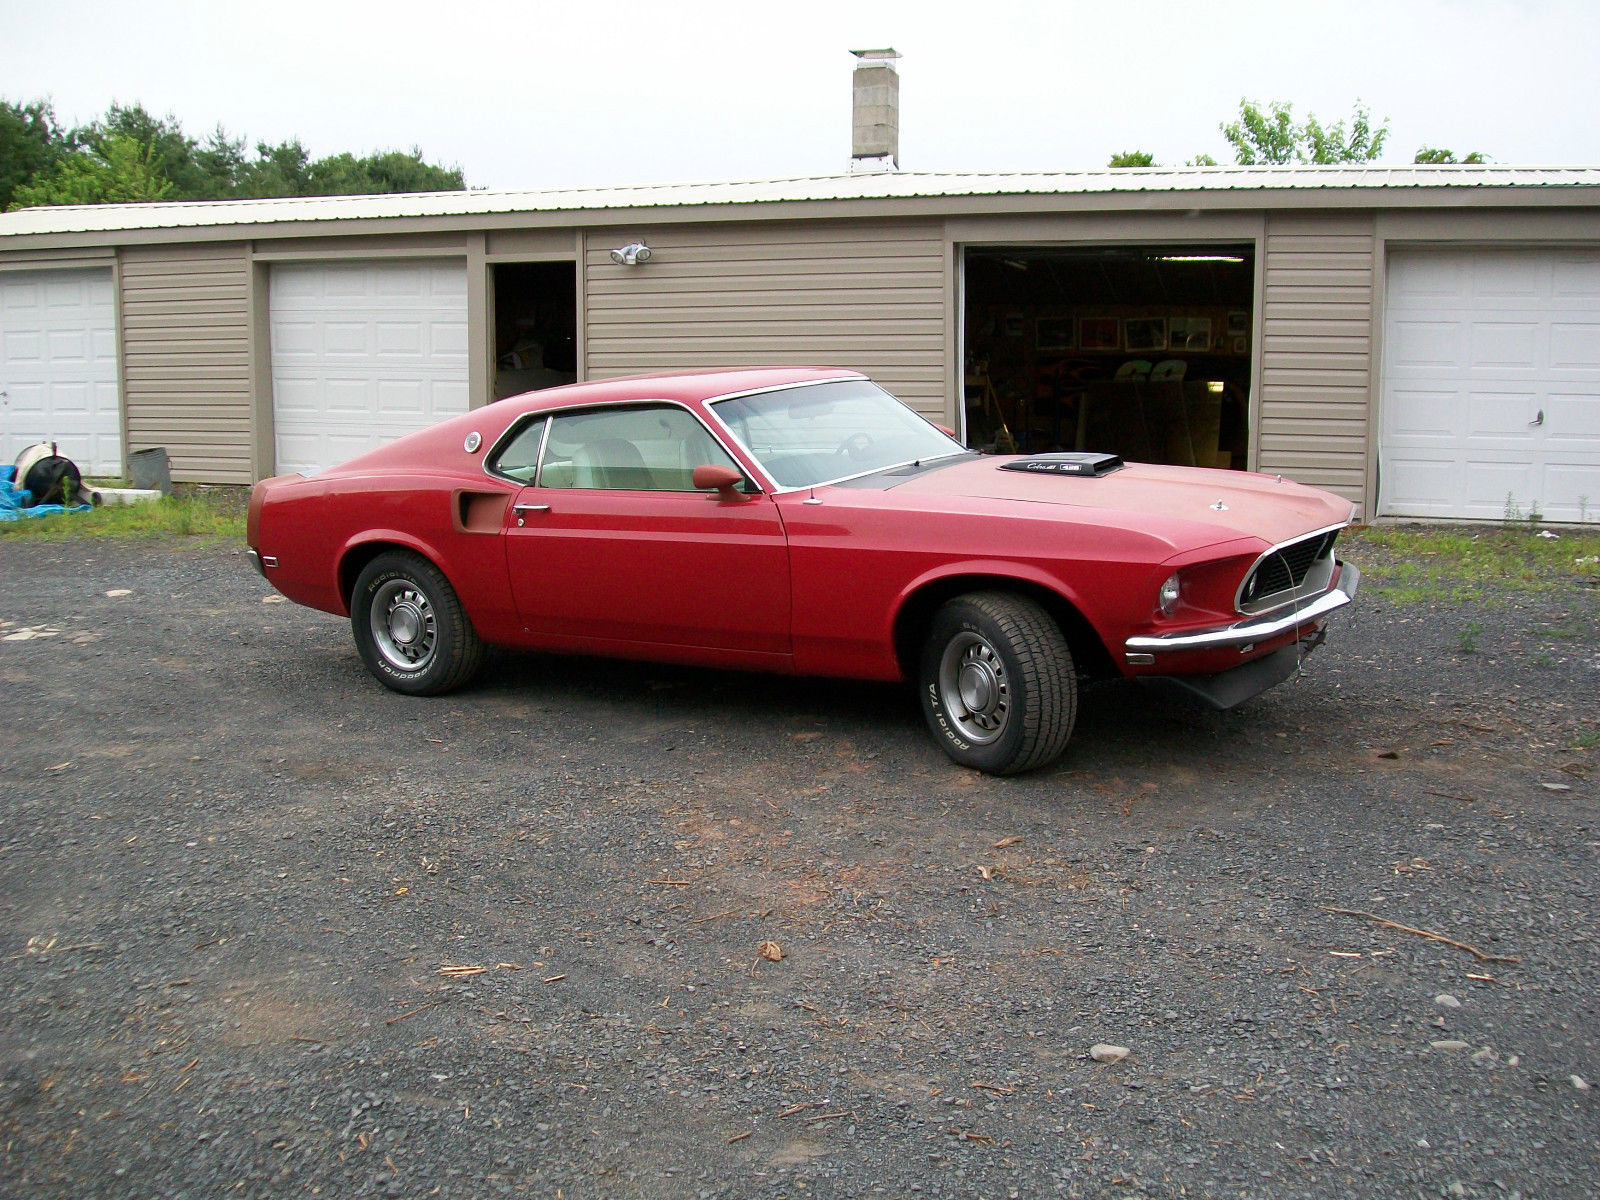 1969 Ford Mustang 390 Mach 1 With 428 Super Cobra Jet For Sale In Shelby